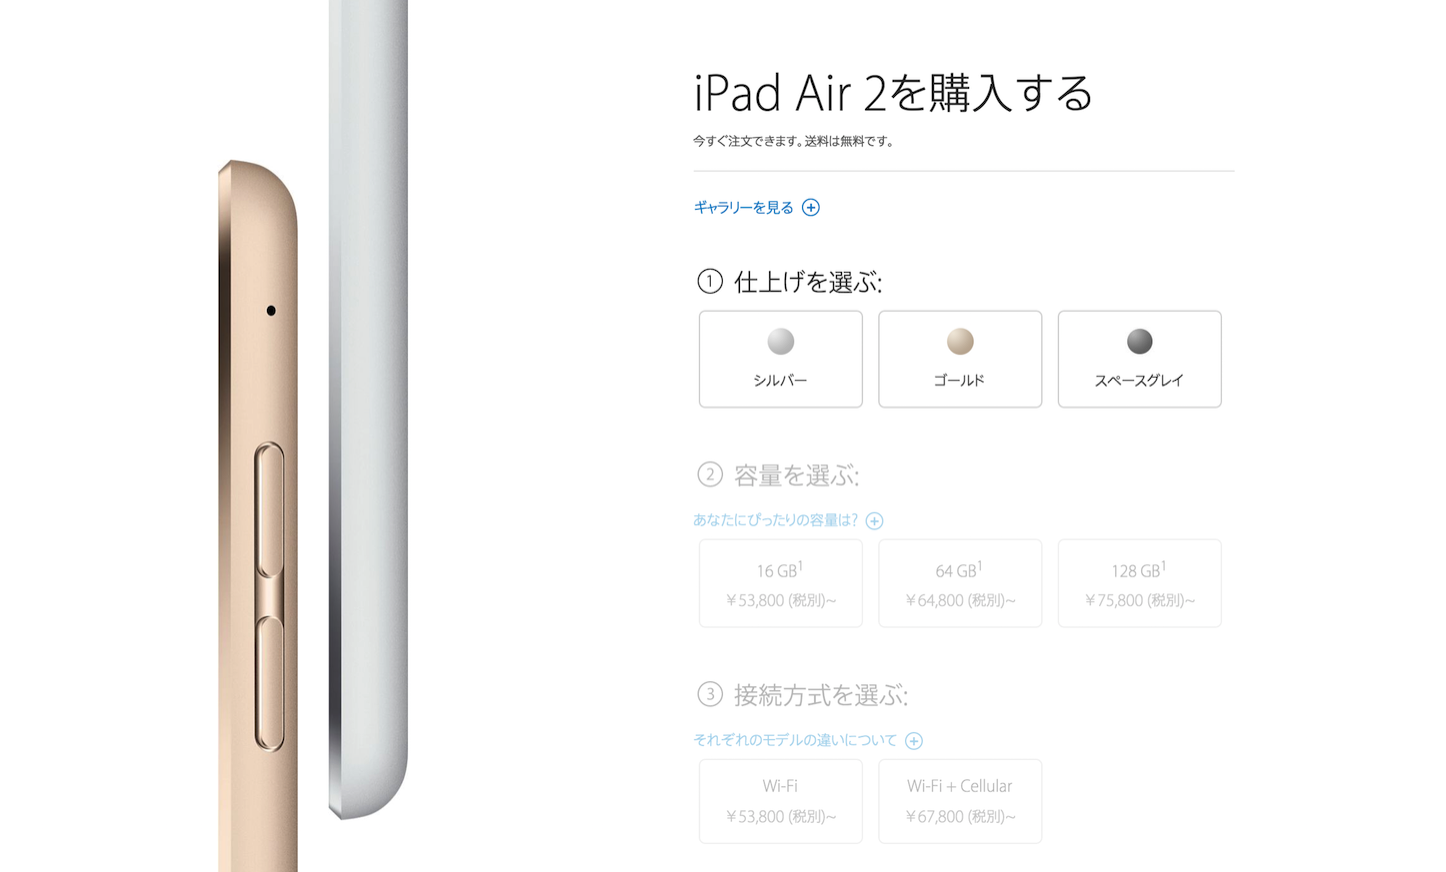 Buying ipad air 2